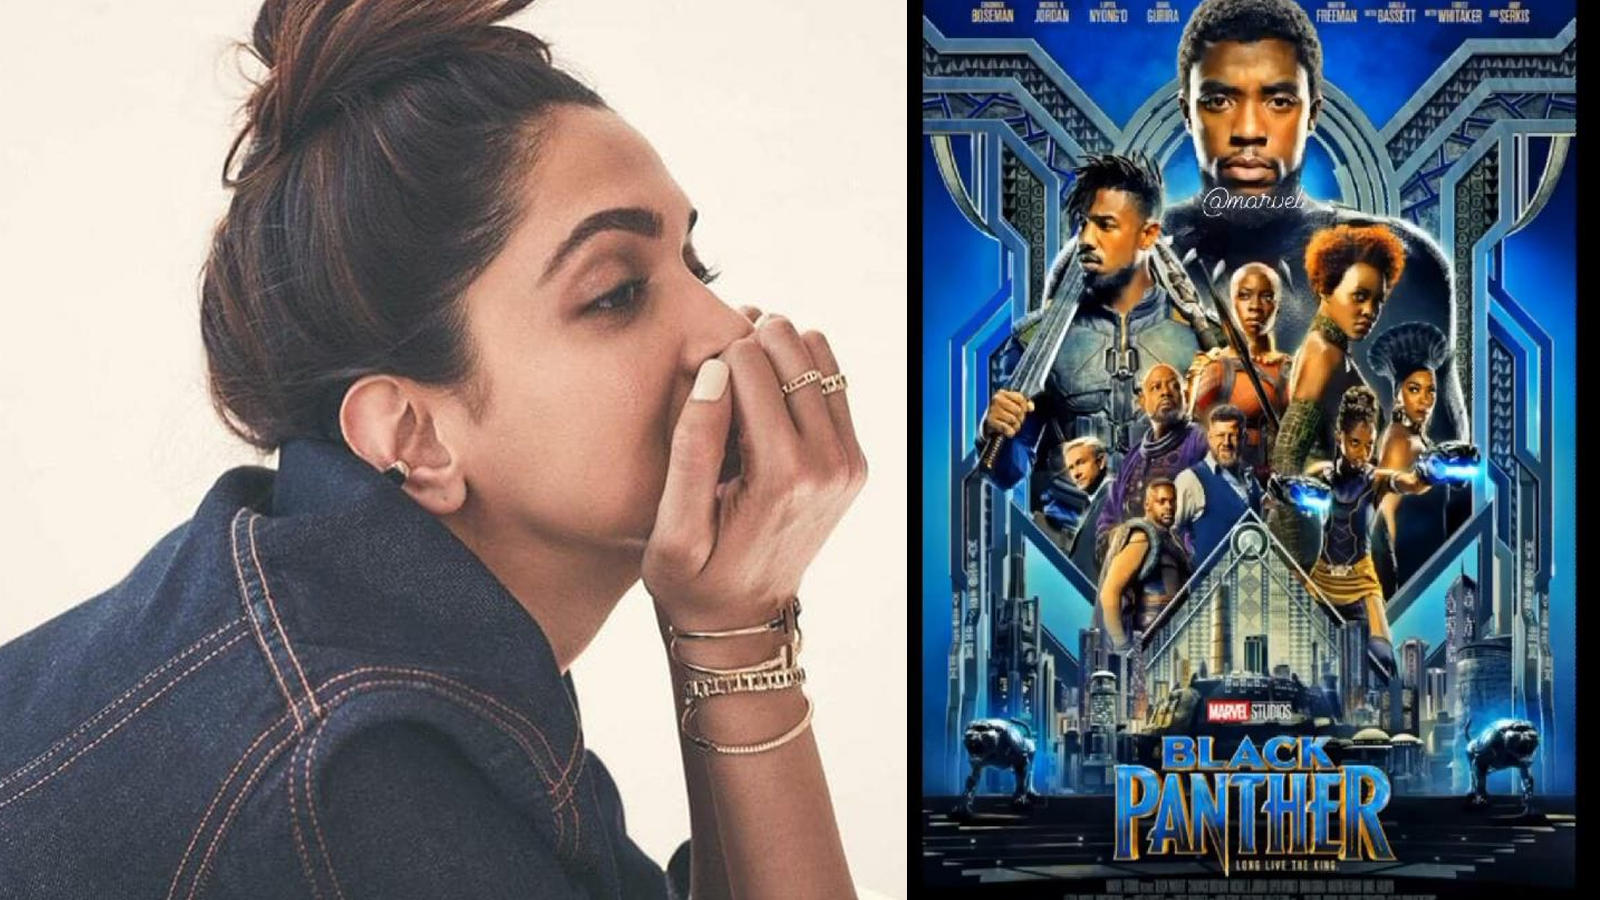 deepika-padukone-shares-a-dialogue-excerpt-from-black-panther-as-world-fights-many-adversaries-including-covid-19-locust-attack